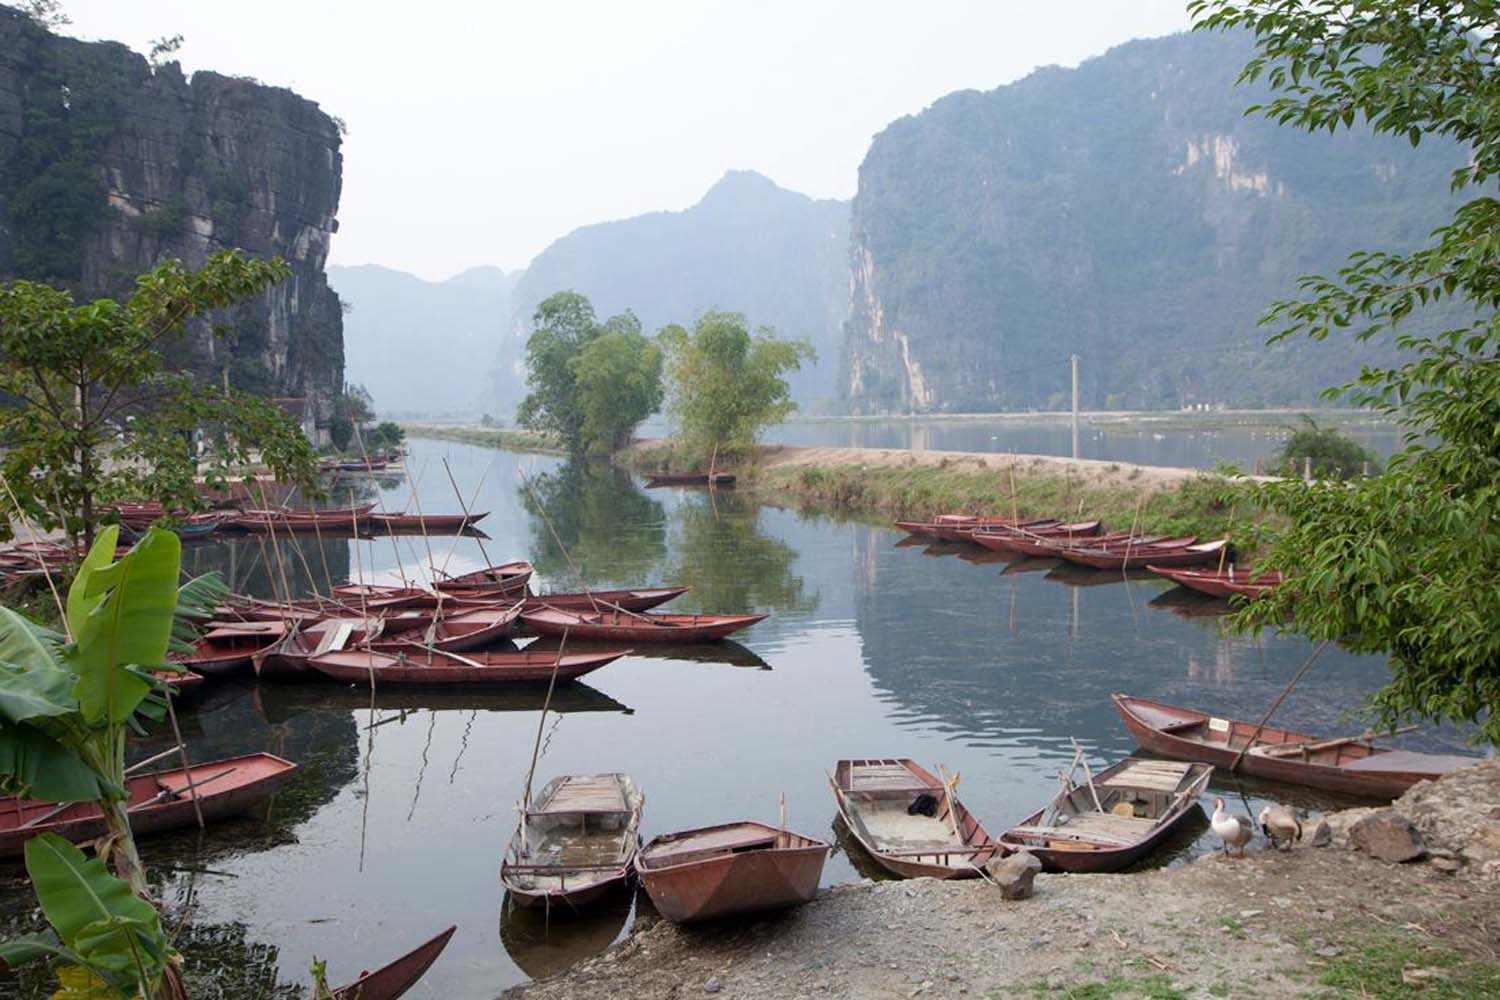 vietnam dating tours Flights q are flights from north america included no, our small group tours and tailor-made vacation prices do not include the cost of your flights from north america.